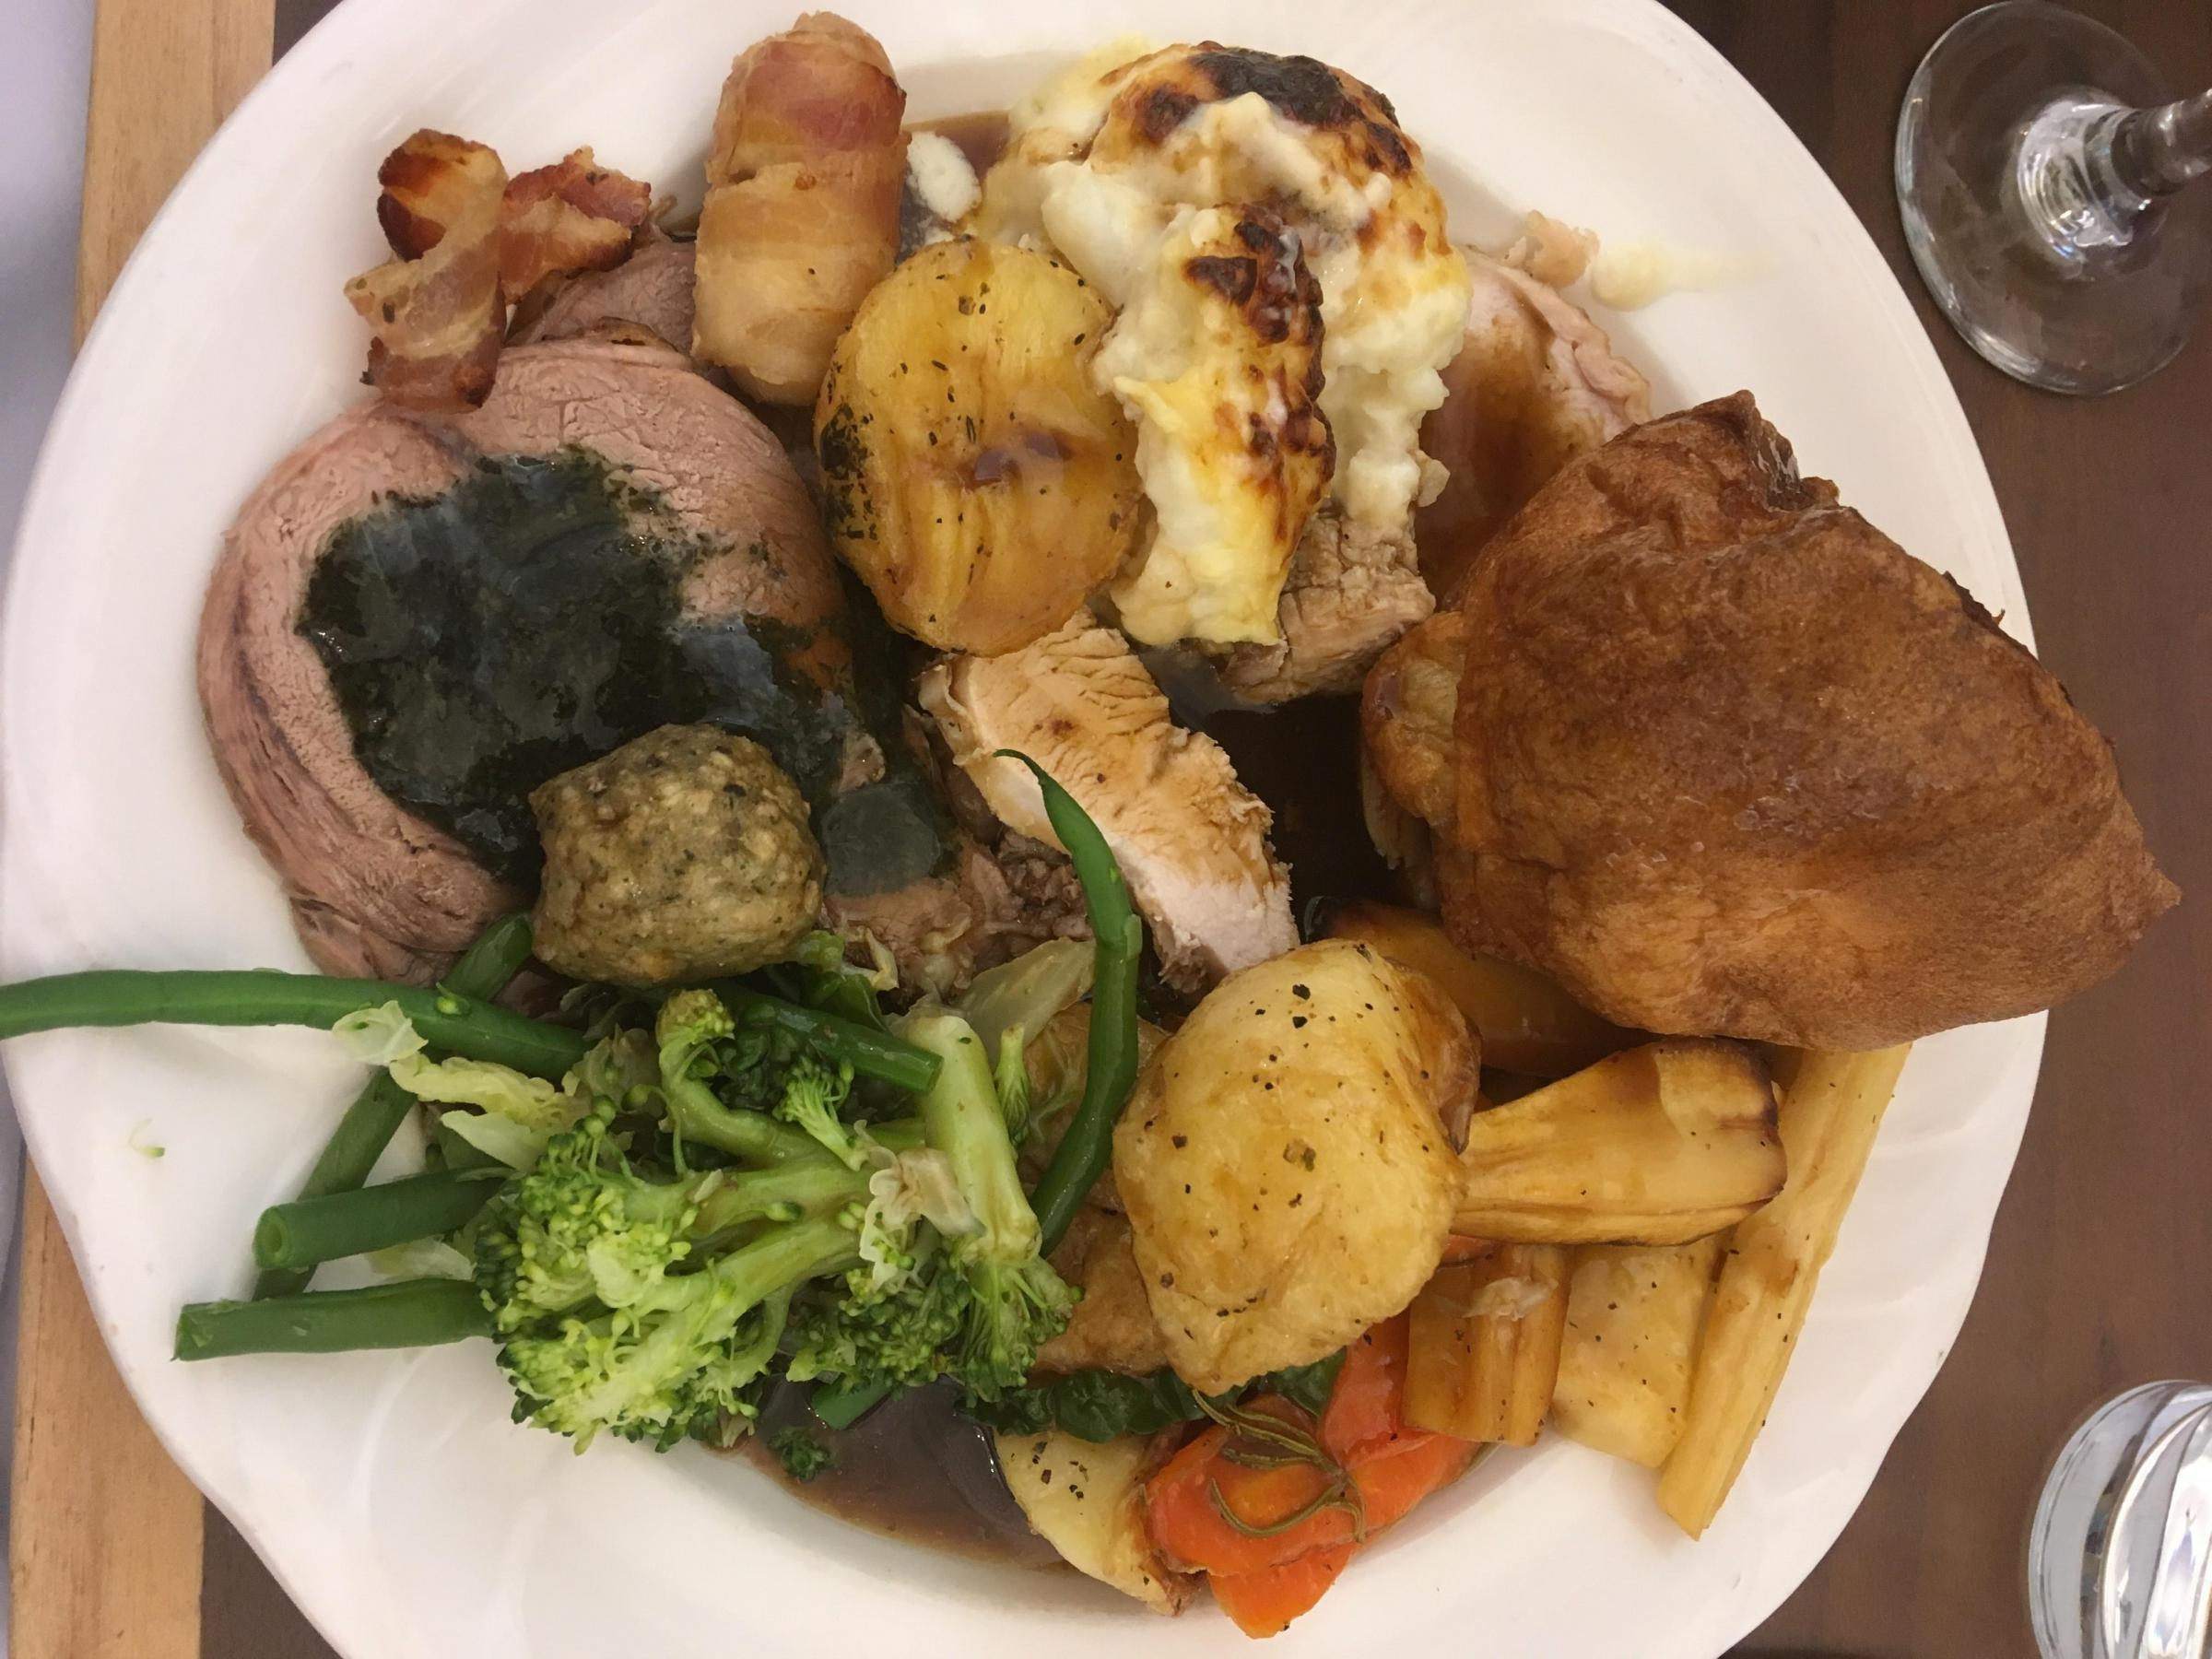 The Norfolk Royale Sunday roast tried and tested